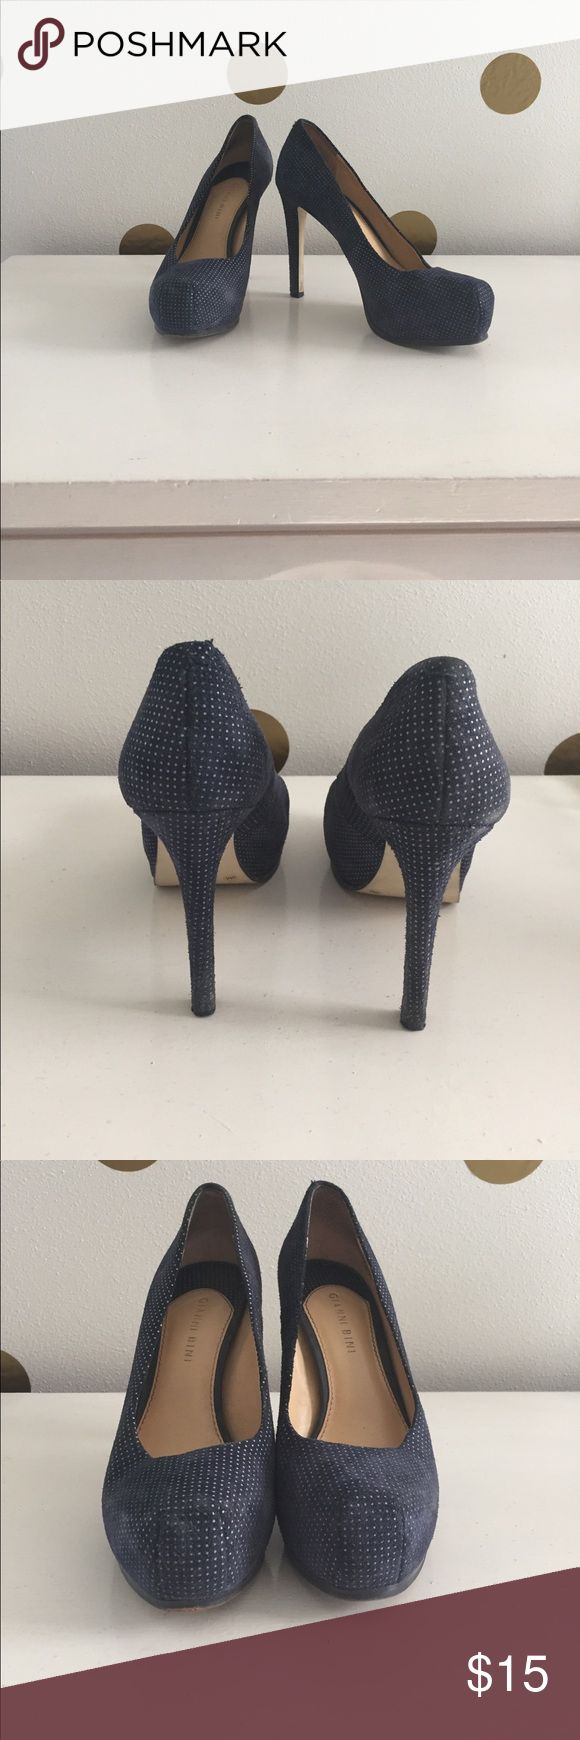 Gianni Bini Navy Suede Platform Pumps! Size 9M! Navy Suede Platform Pumps with Small, White Polka Dot Pattern throughout. Signs of normal wear, but in really good condition! Gianni Bini Shoes Heels